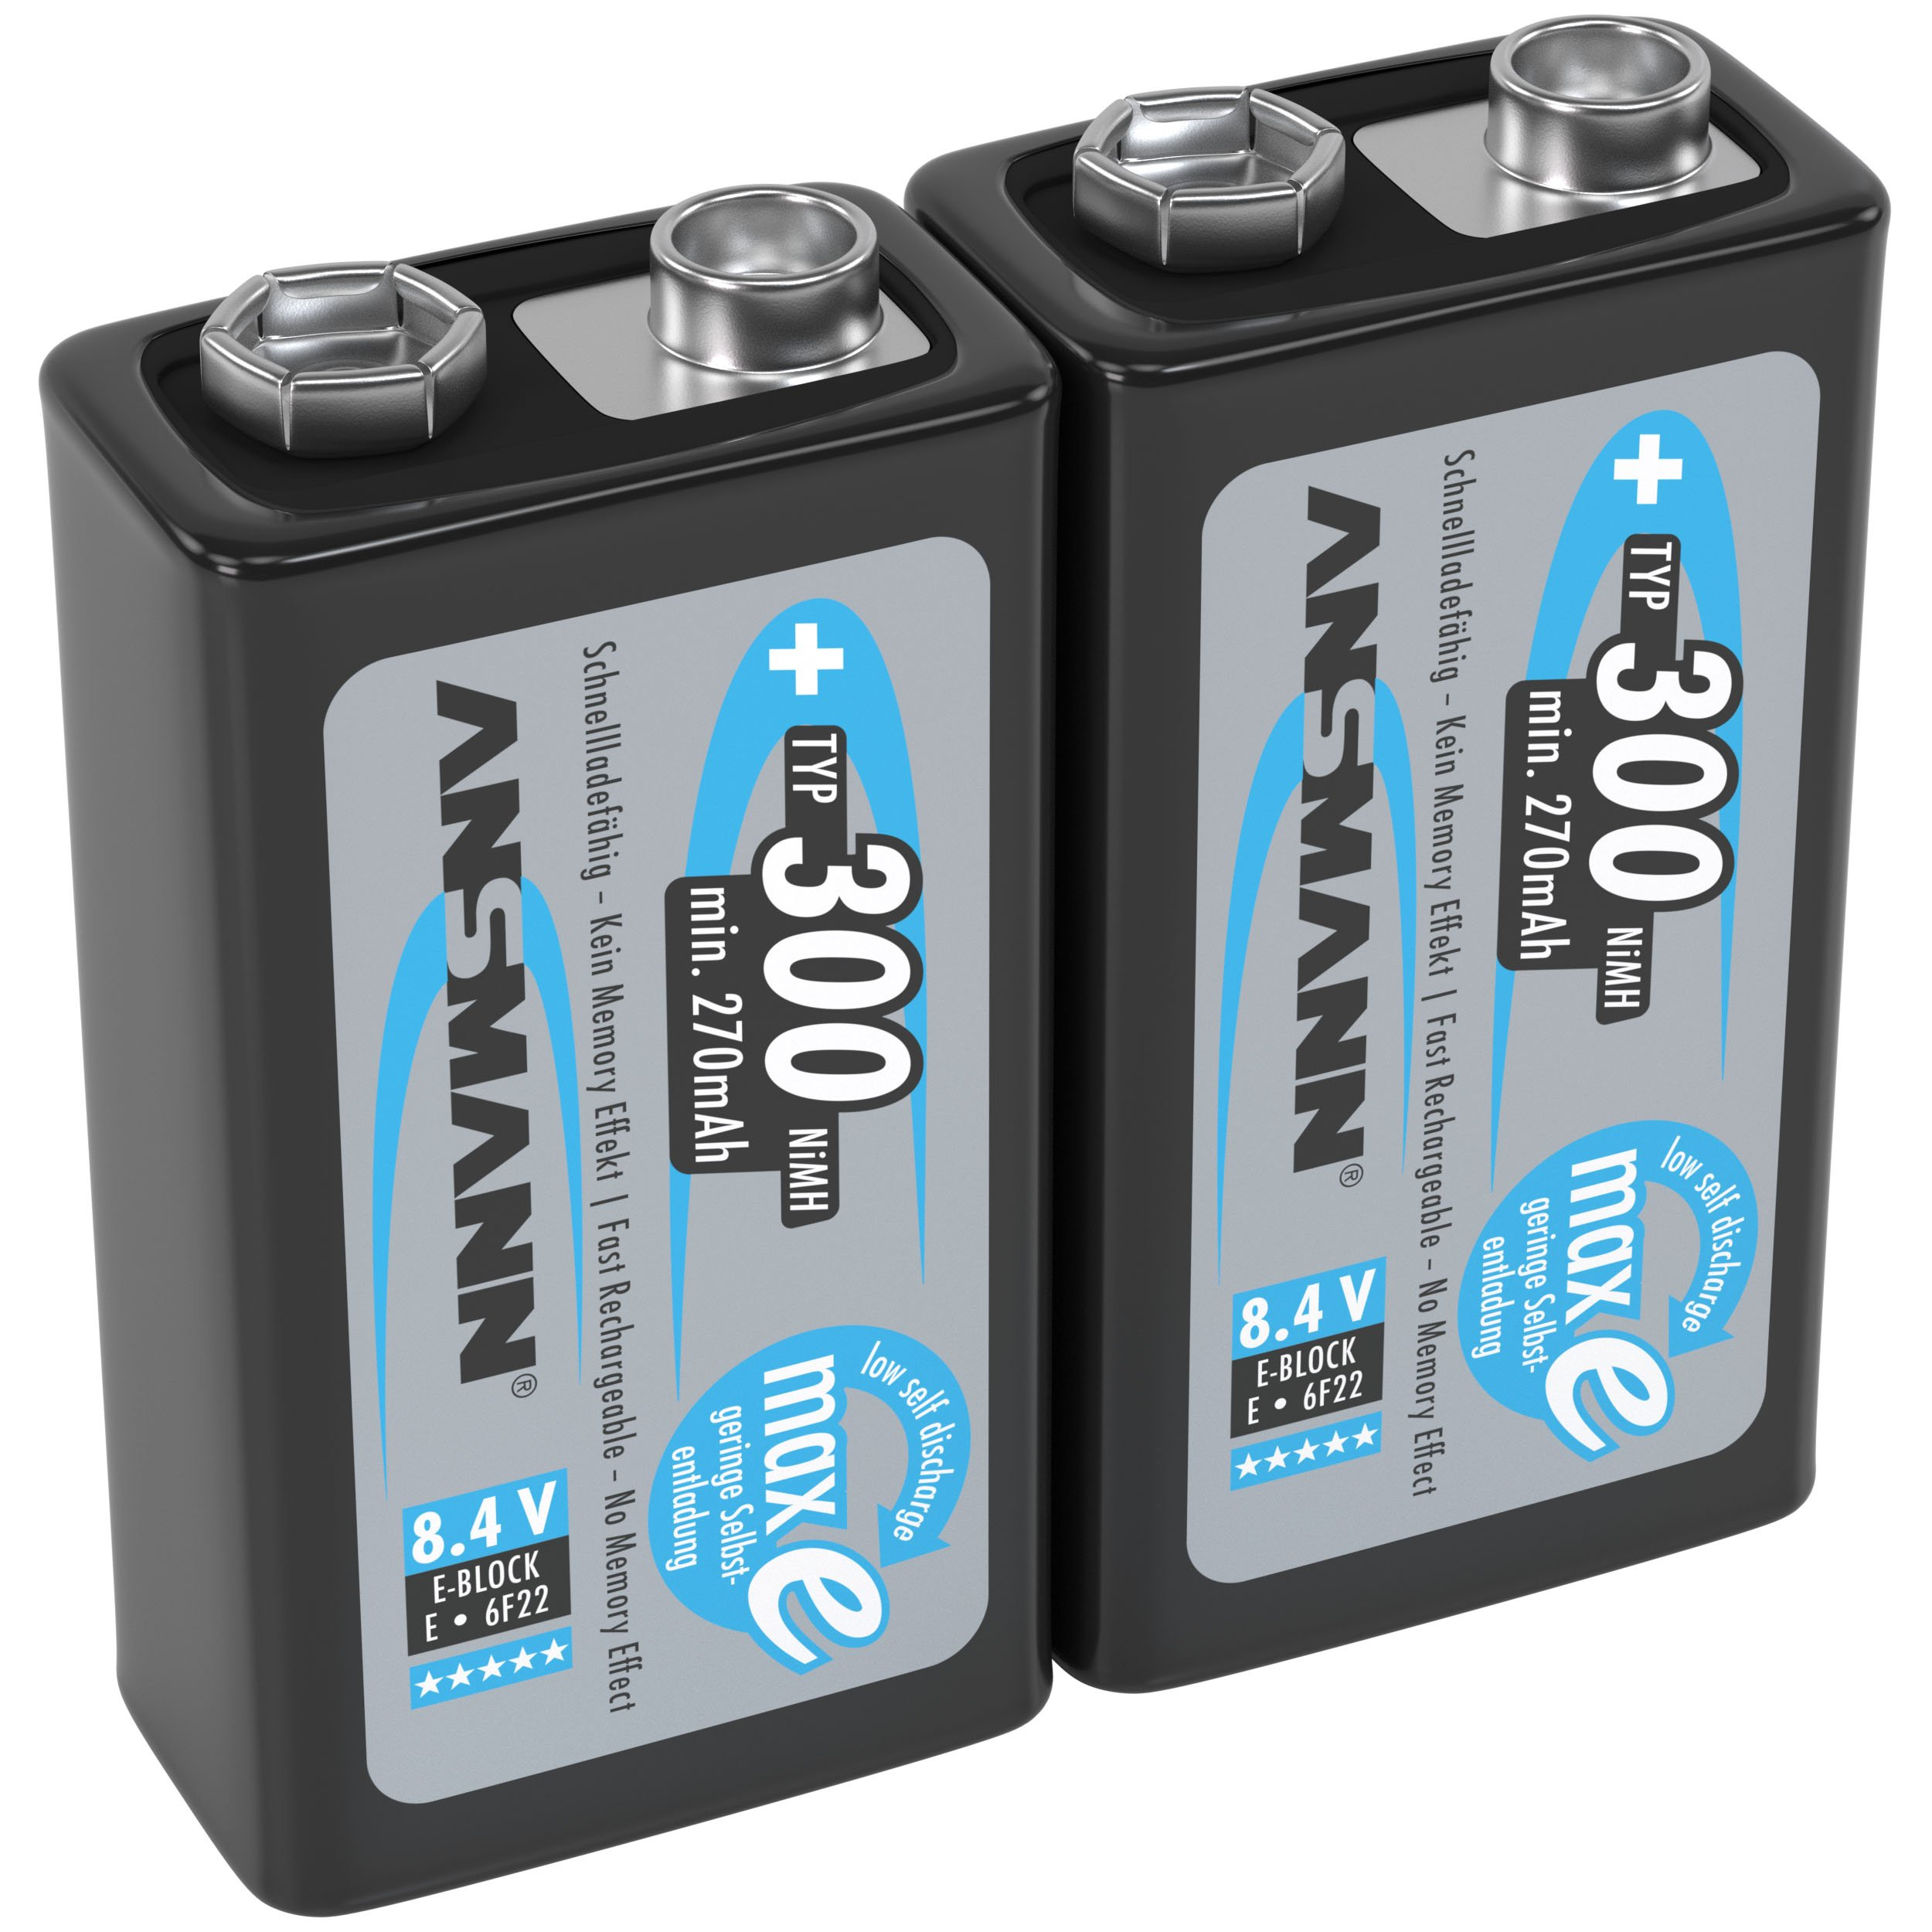 ANSMANN 9V Rechargeable Batteries 300mAh pre-Charged Low Self-Discharge (LSD) NiMH 9 Volt Battery 9V Battery (2-Pack)